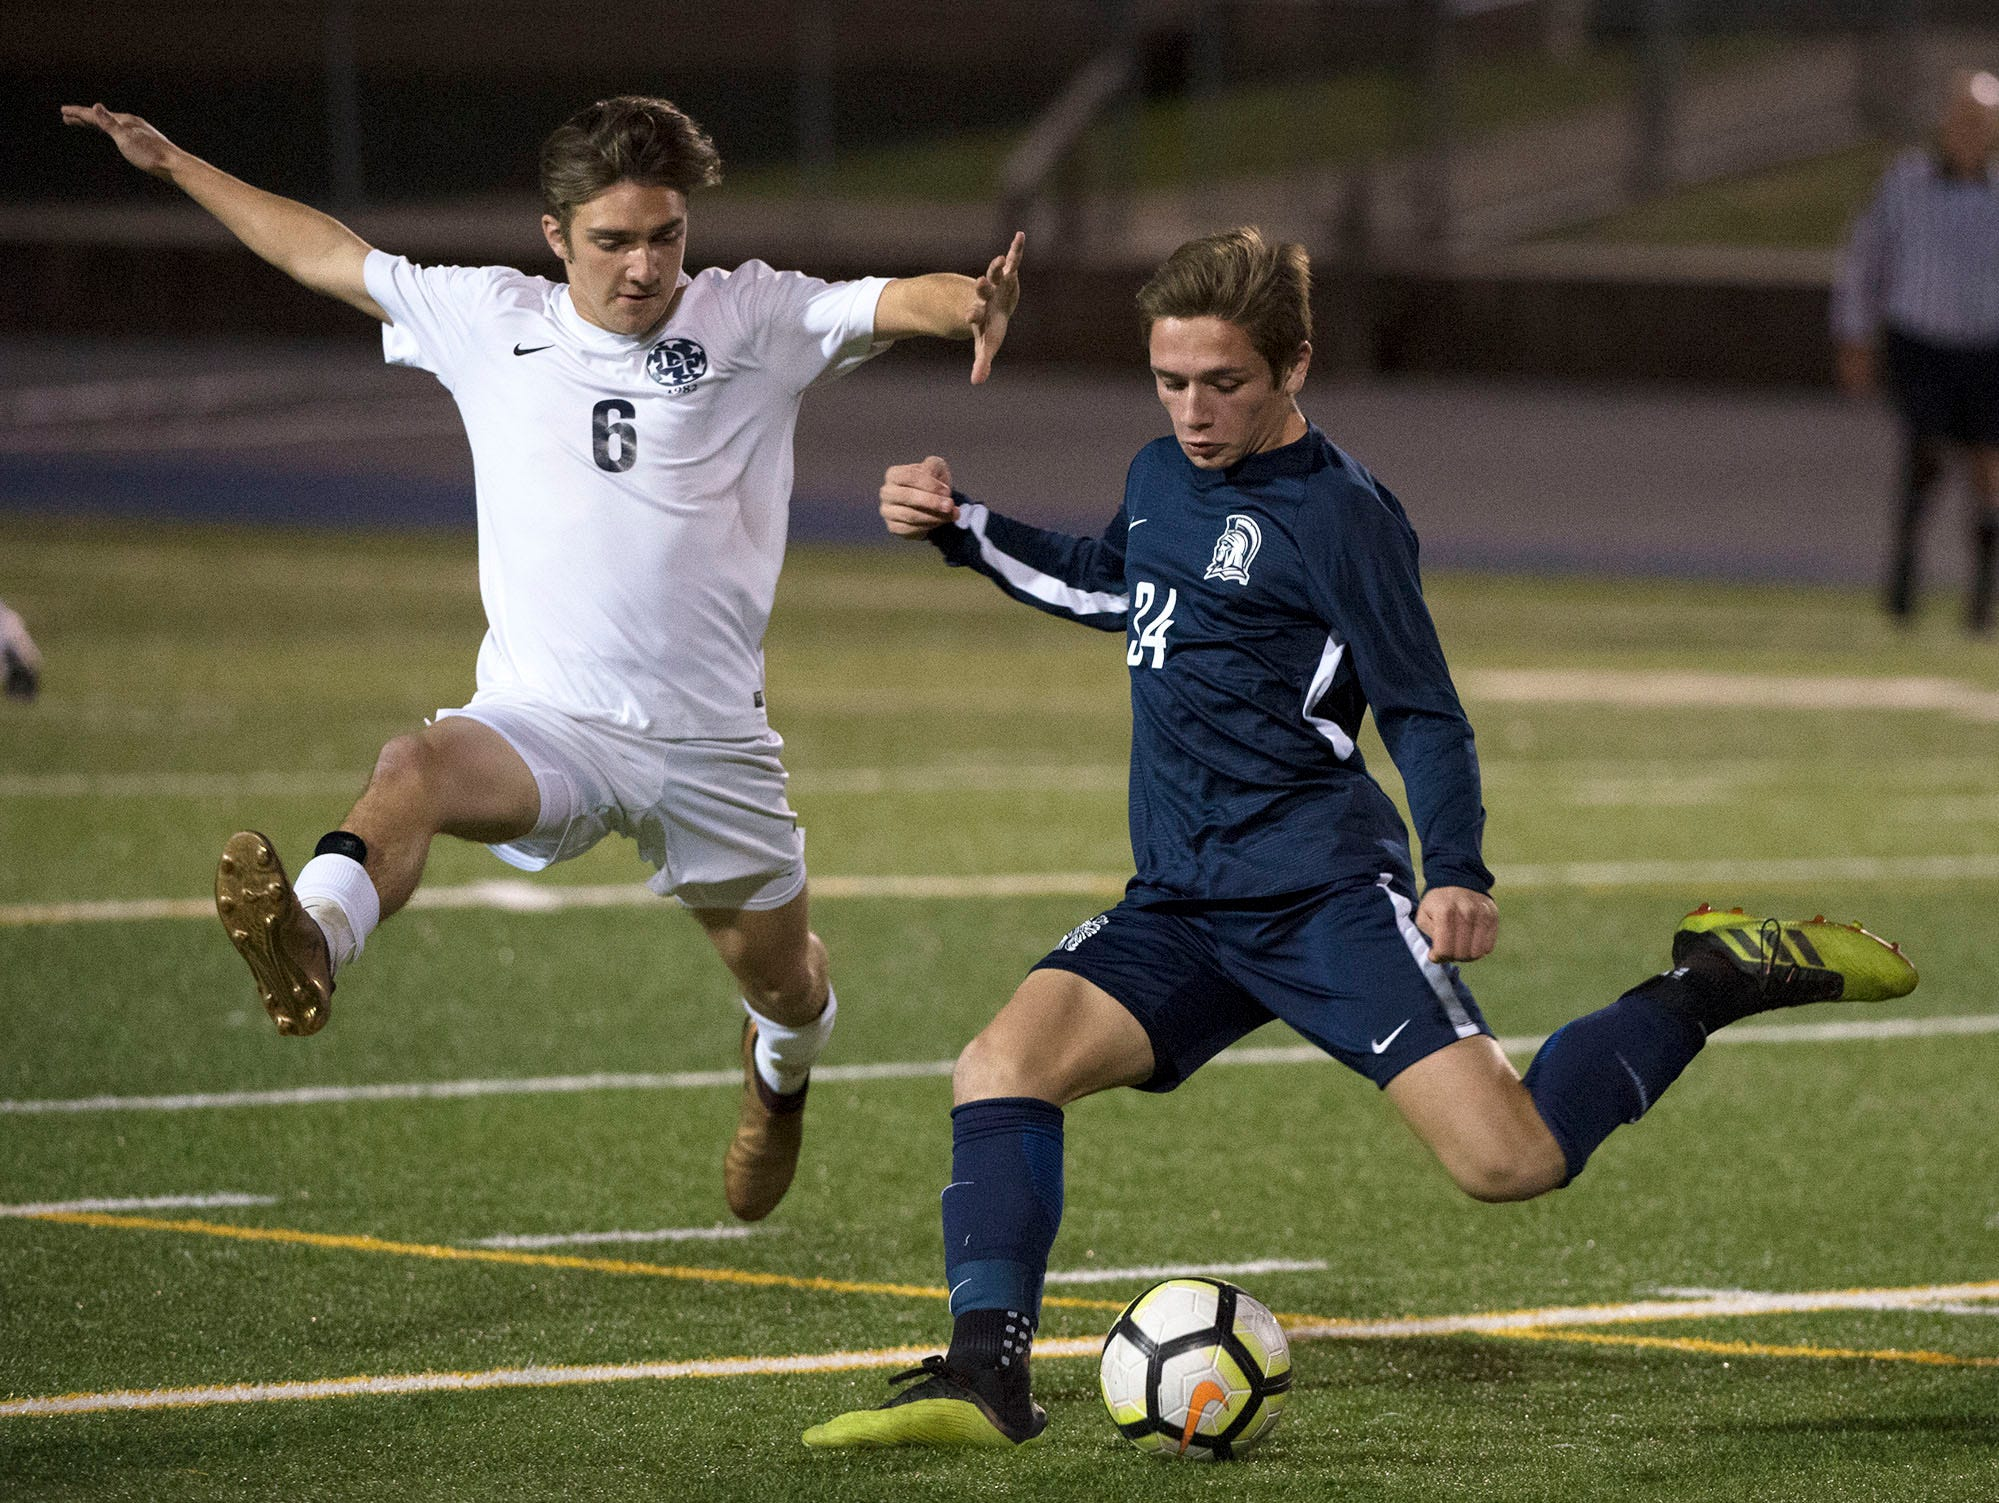 Chambersburg's Garrick Hill (34) kicks the ball around Carmen Ridolfi (6) of Dallastown. Chambersburg lost a first round D3 soccer match to Dallastown 2-1 on Tuesday, Oct. 23, 2018.